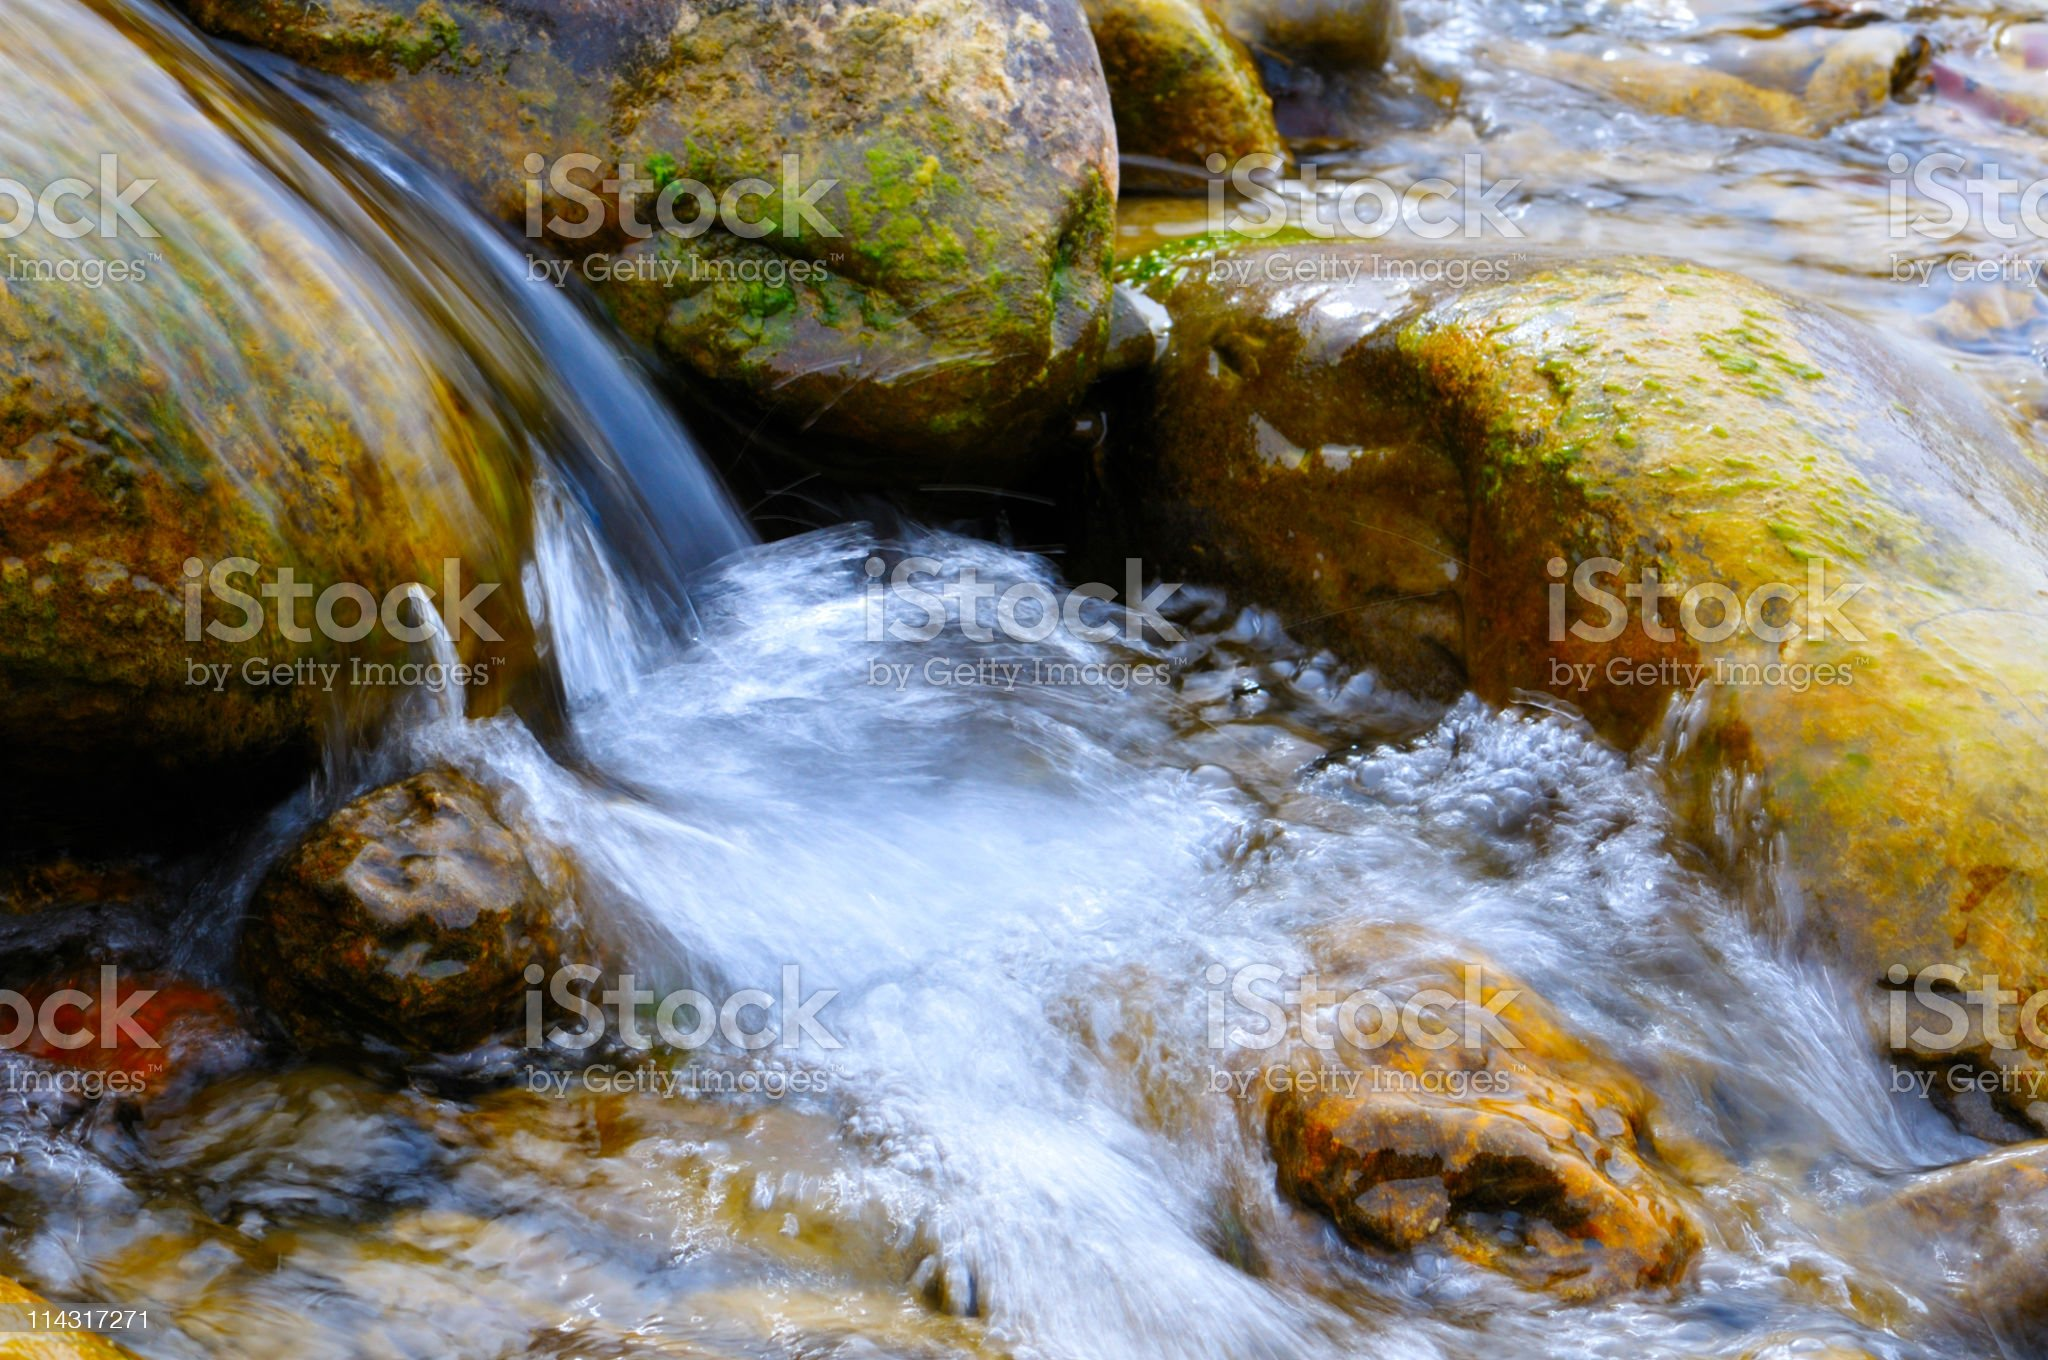 Water Running Over Rocks royalty-free stock photo